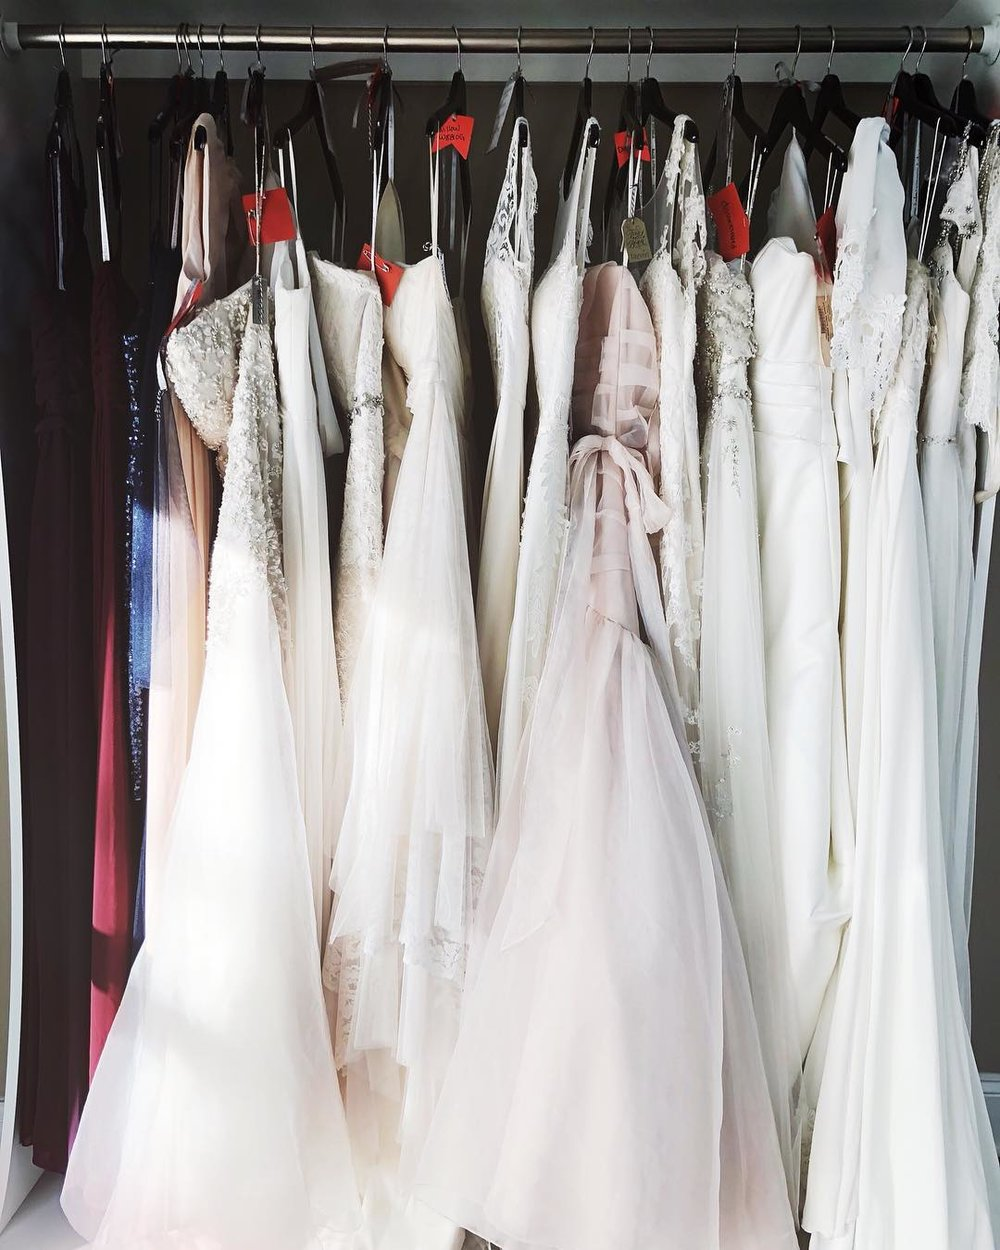 ivory-and-beau-bridal-boutique-off-the-rack-wedding-gowns-off-the-rack-bridal-gowns-off-the-rack-wedding-dress-bridal-sale.jpg